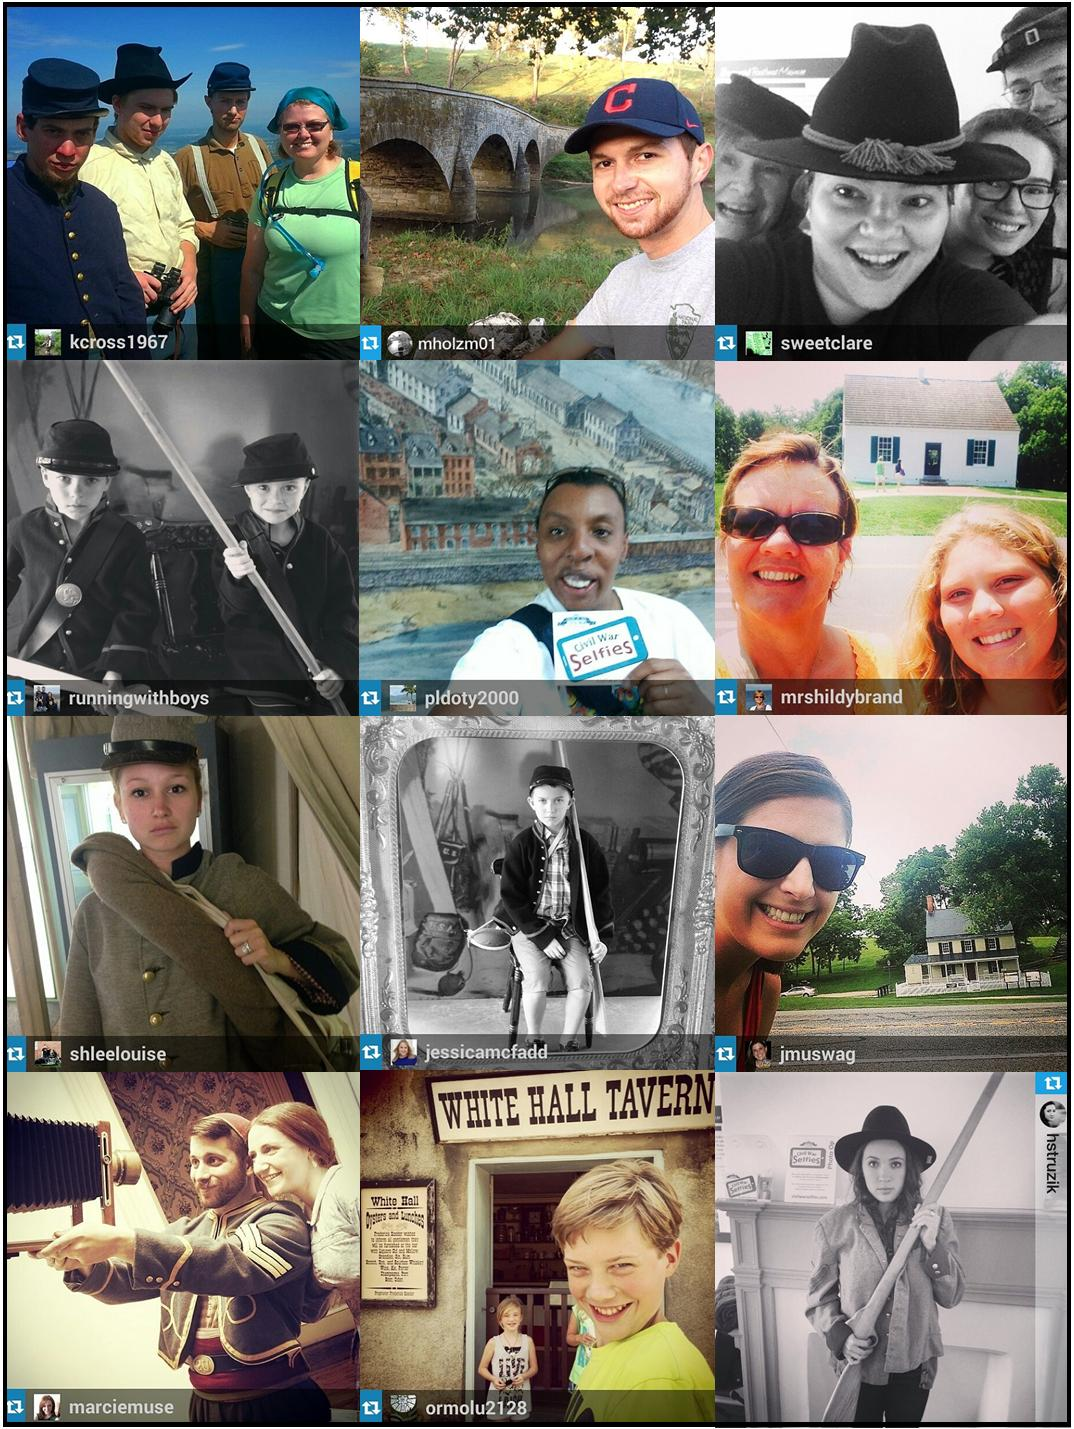 A collage of Civil War Selfies at historic sites from 2014.